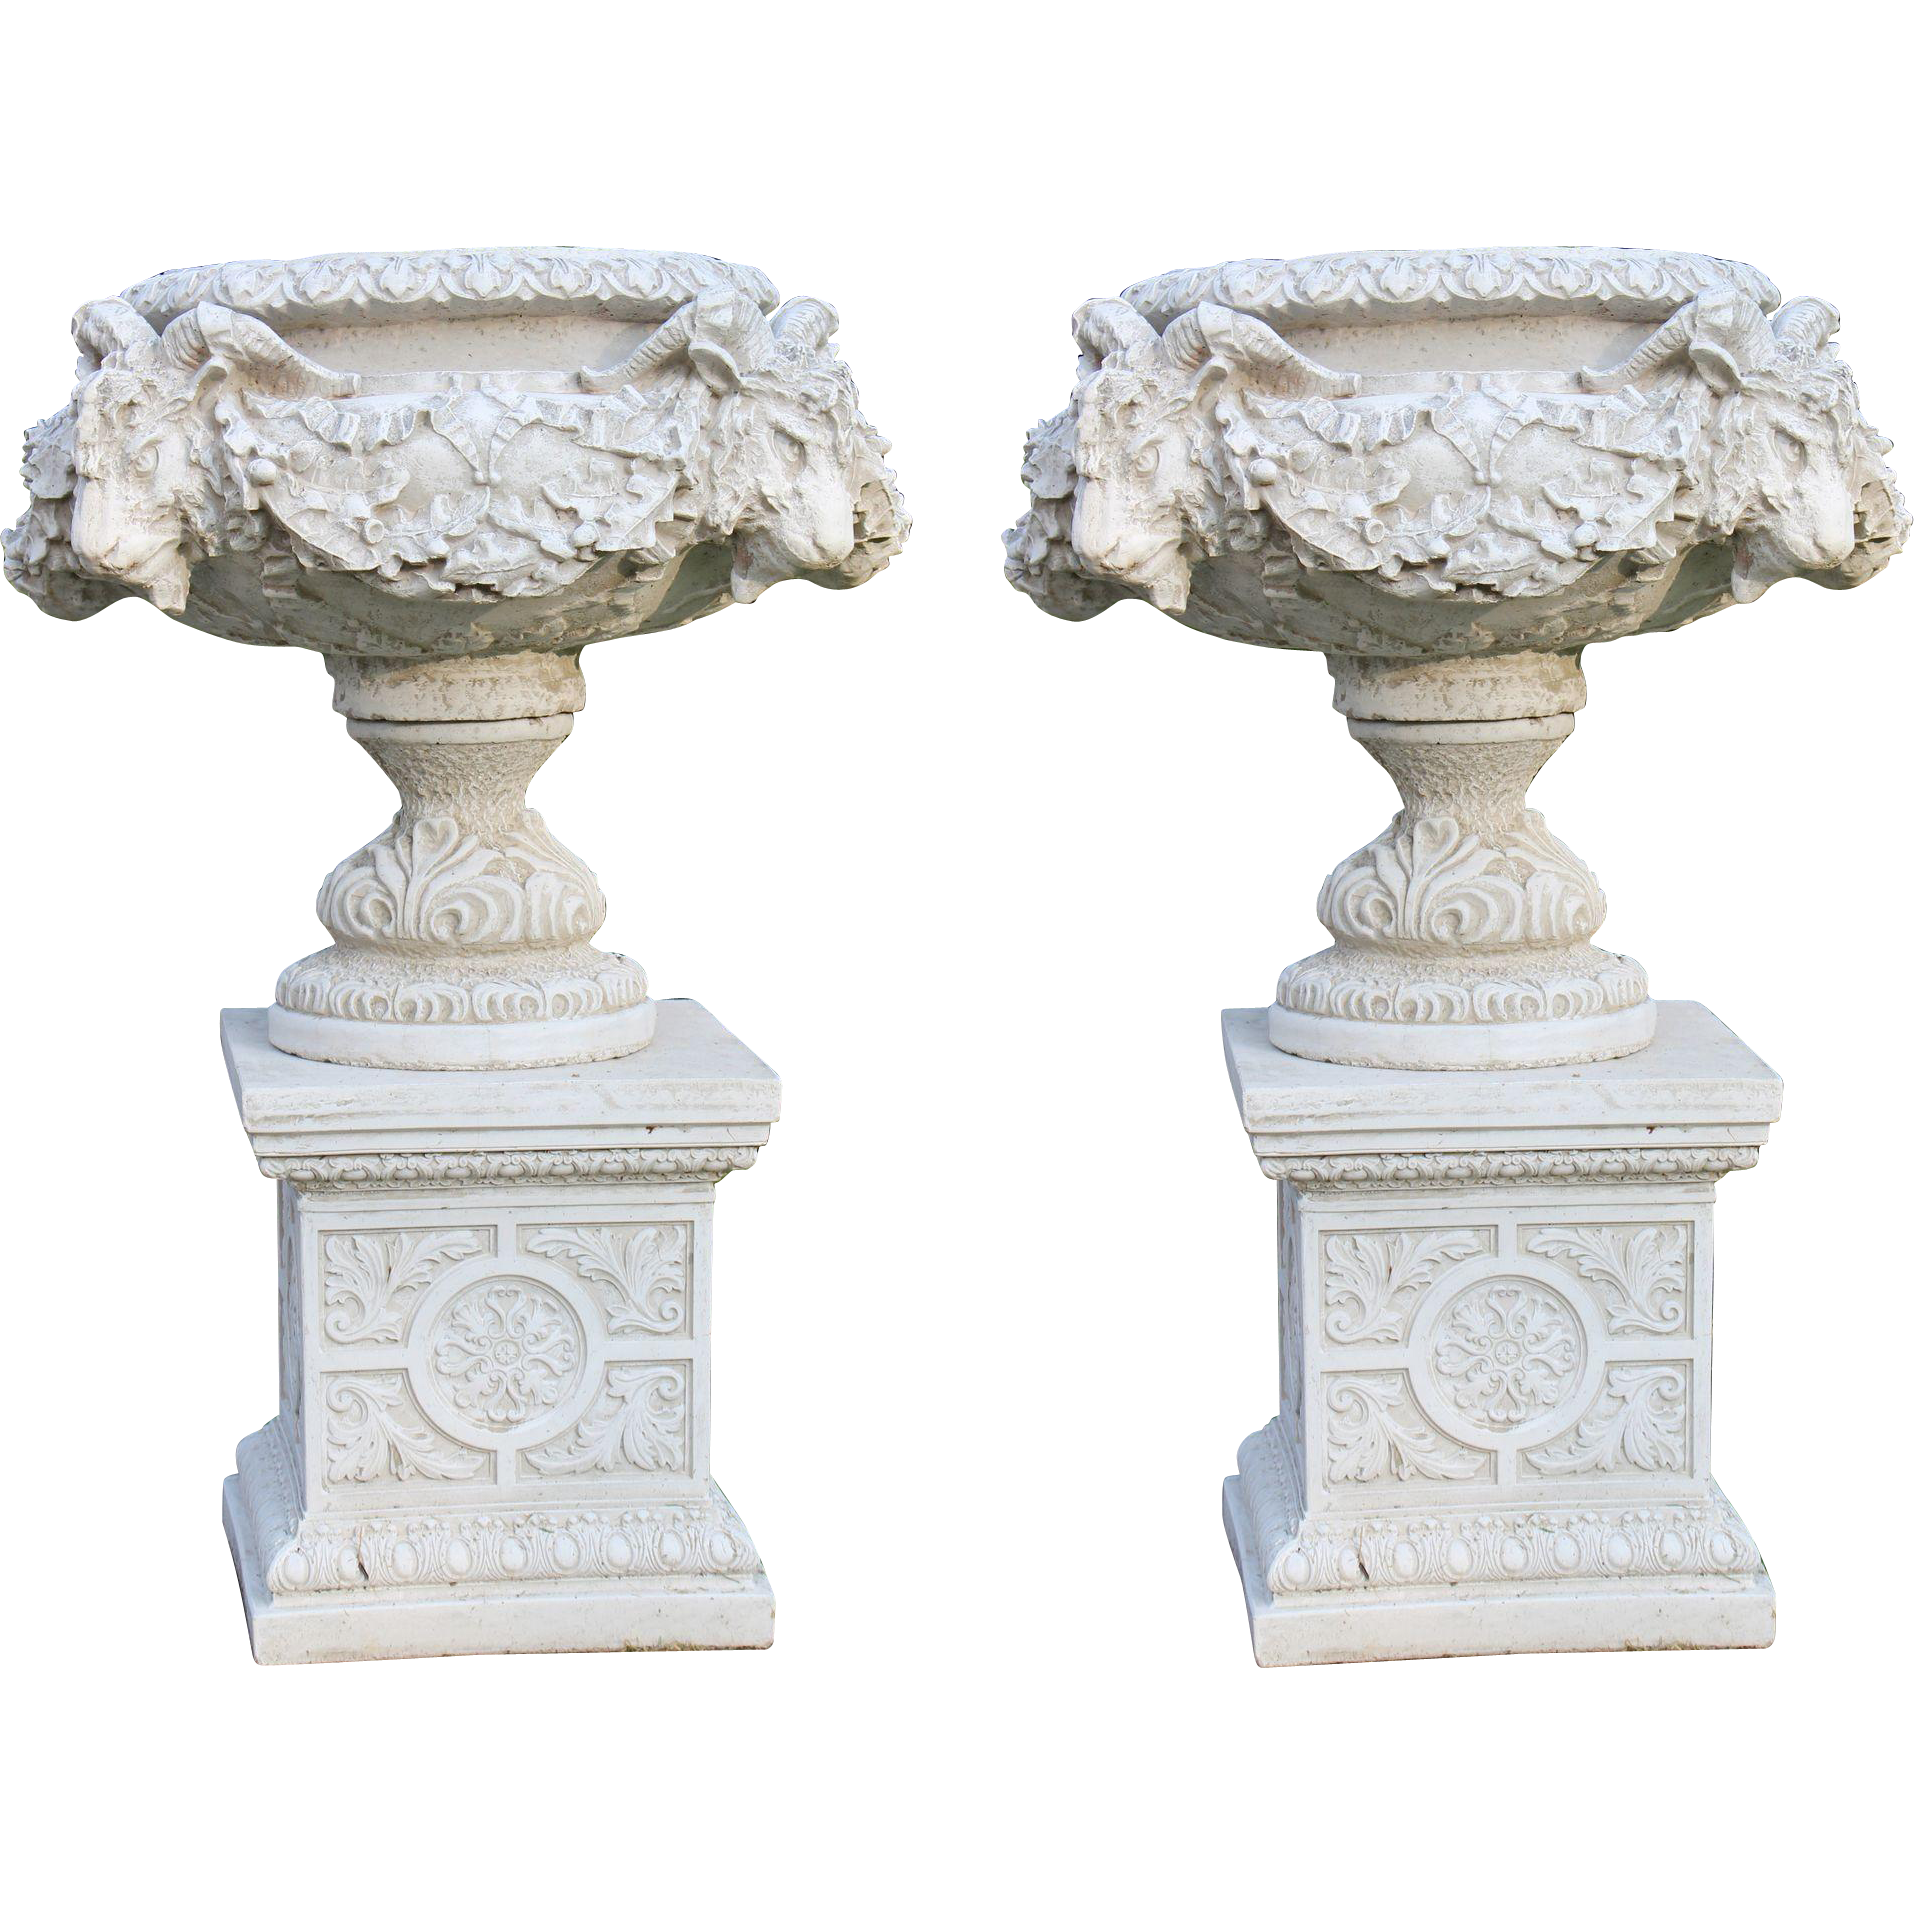 Pair of Heavy Composite Stone Classical Style Garden Urns from